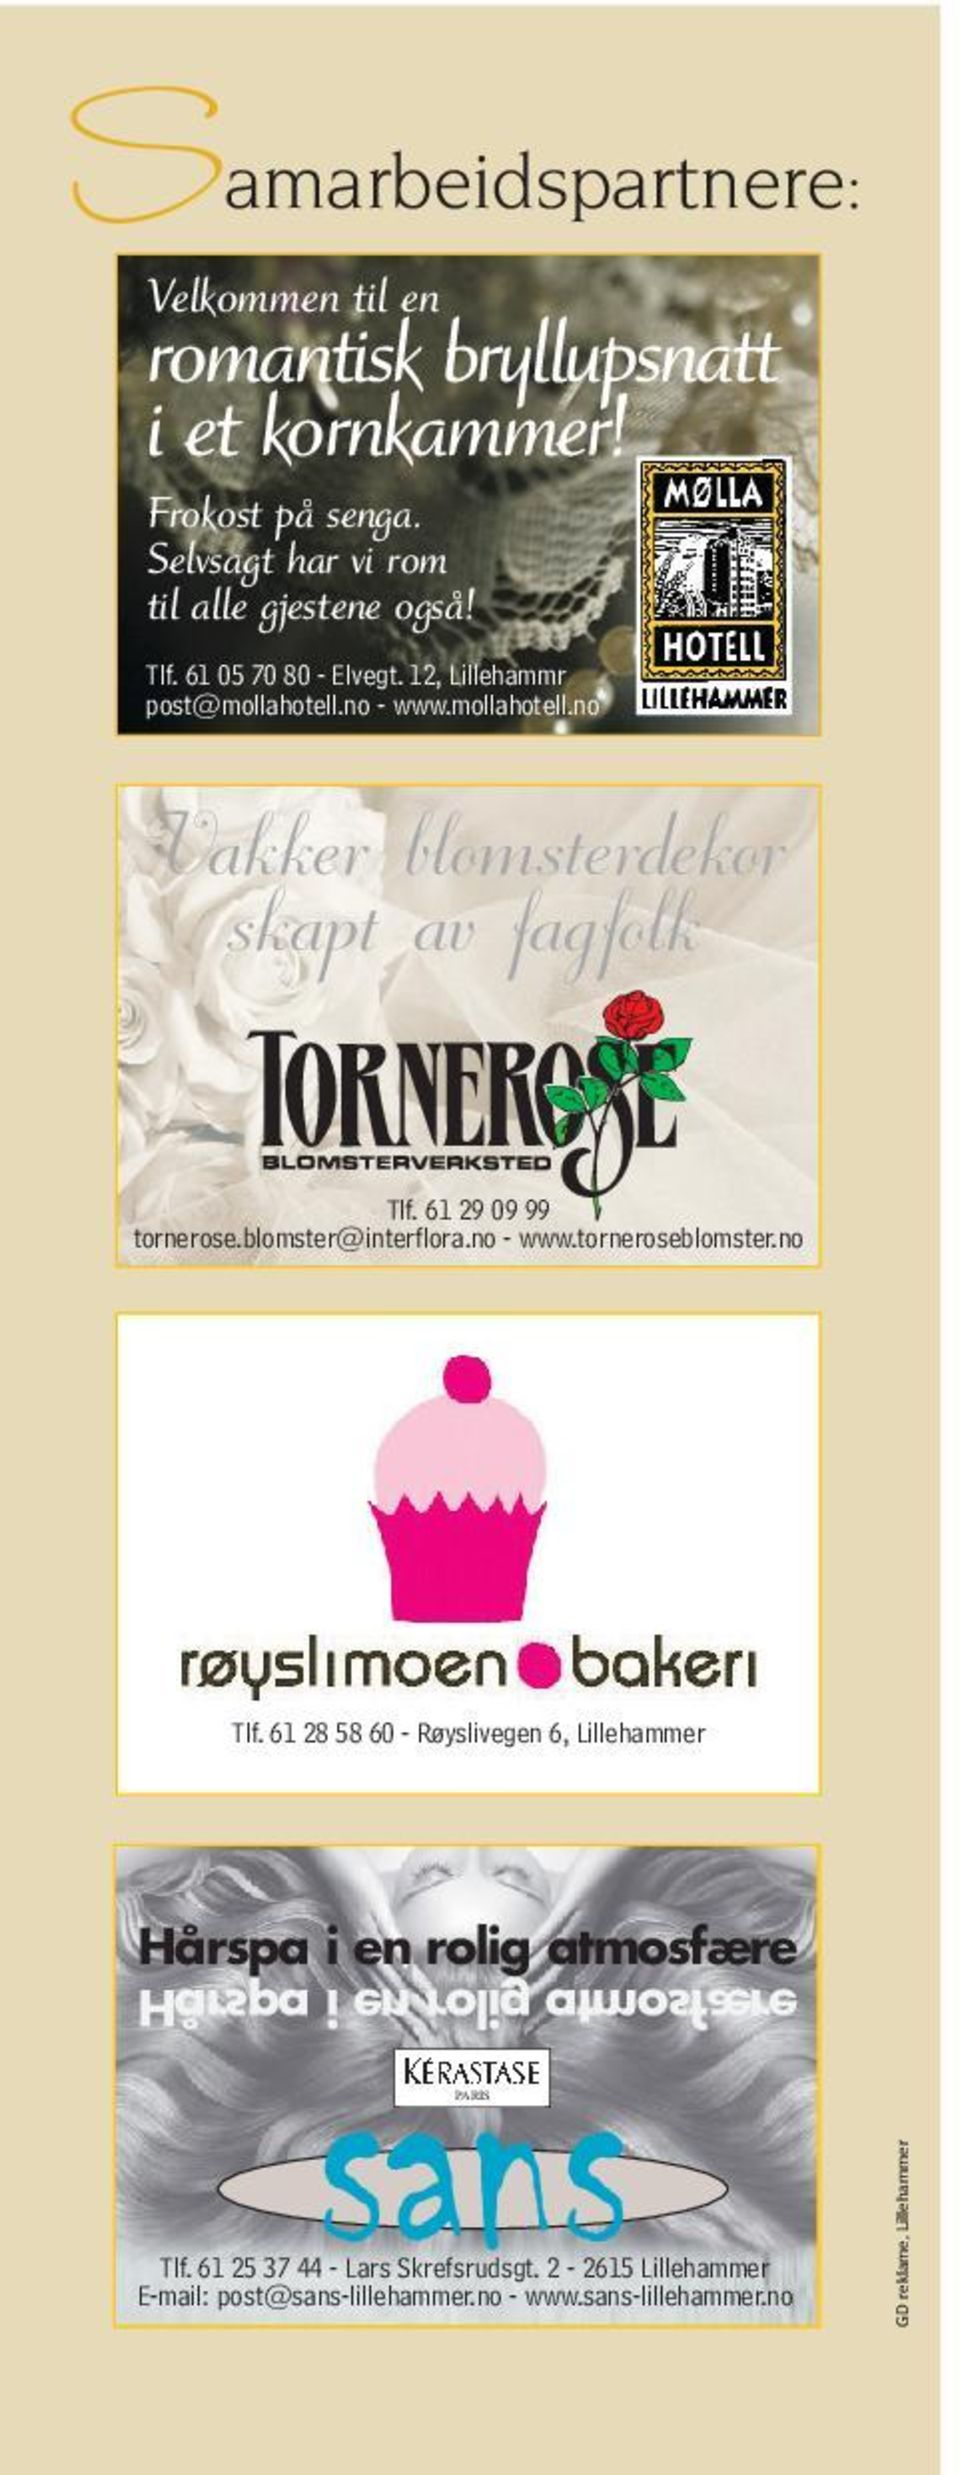 61 29 09 99 tornerose.blomster@interflora.no - www.torneroseblomster.no Tlf.